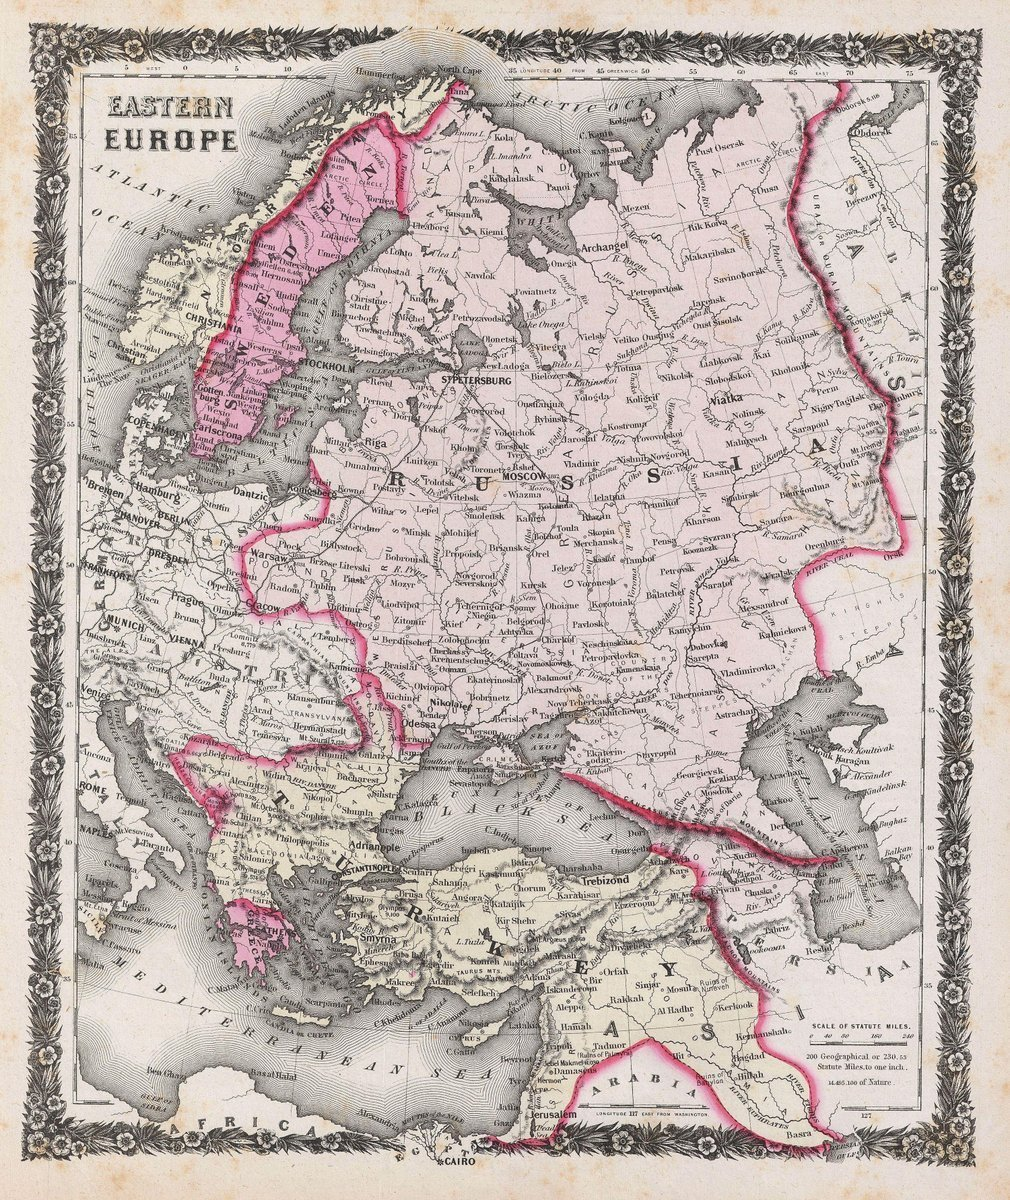 Historical 1858 Colton Antique Map of Russia and Eastern Europe   24in x 30in Fine Art Print